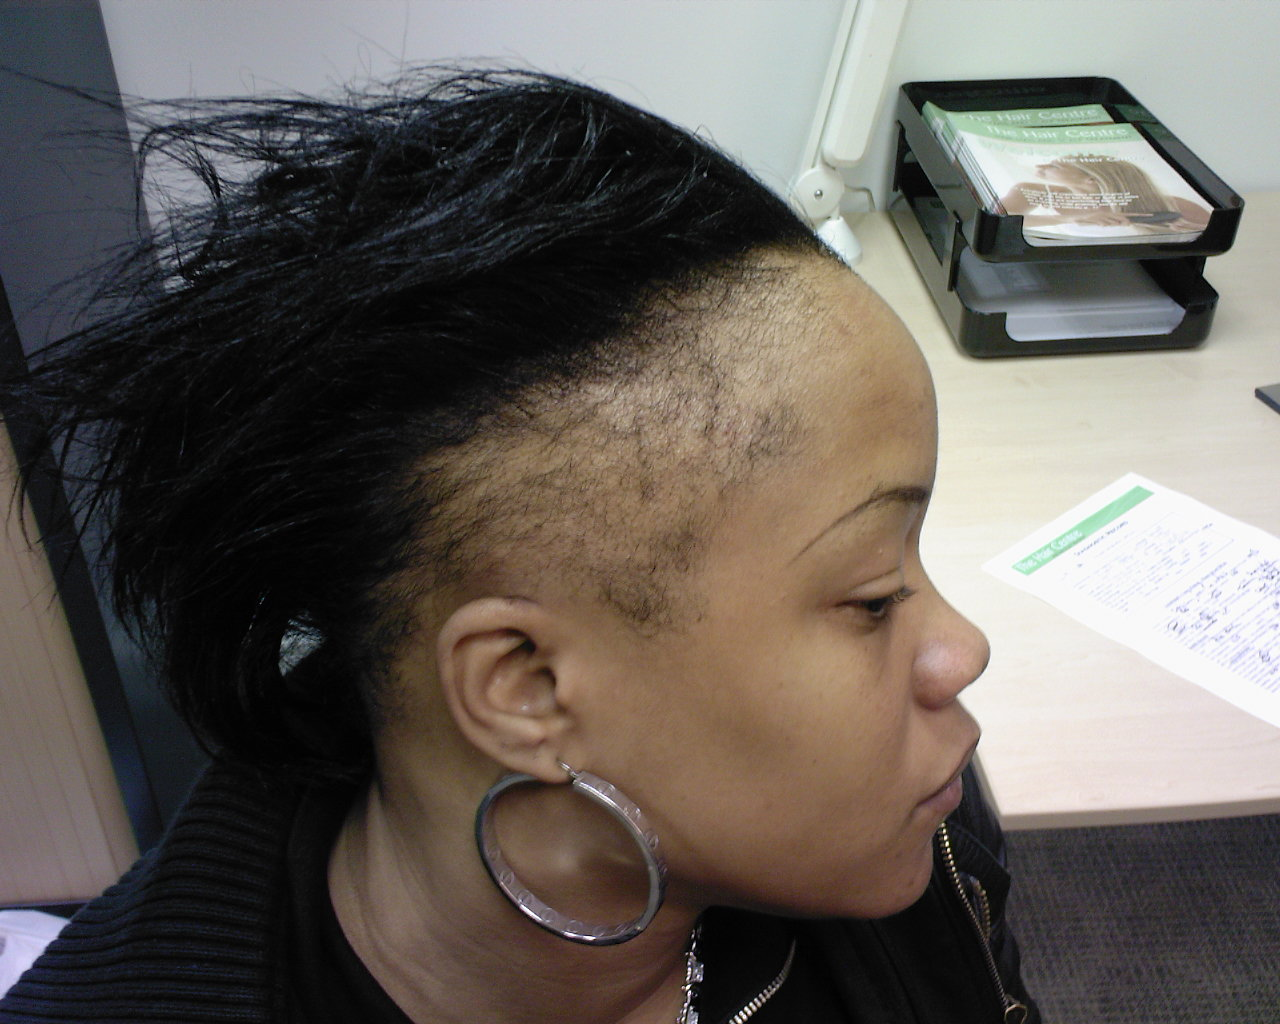 Dealing With Hair Loss as a Woman